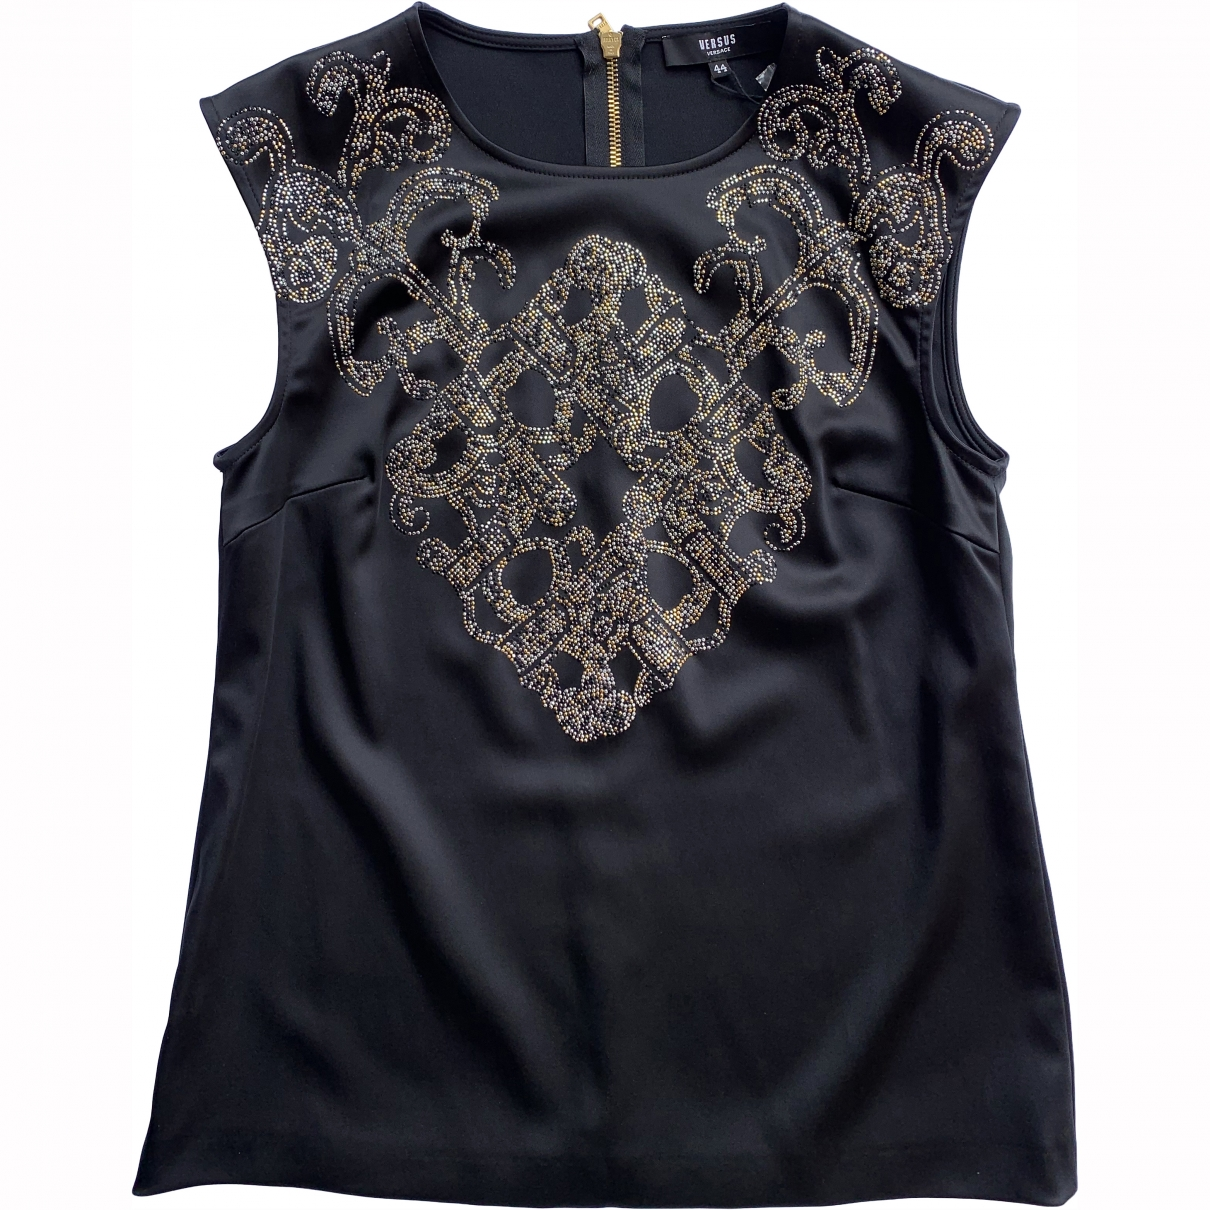 Versus \N Black  top for Women 44 IT